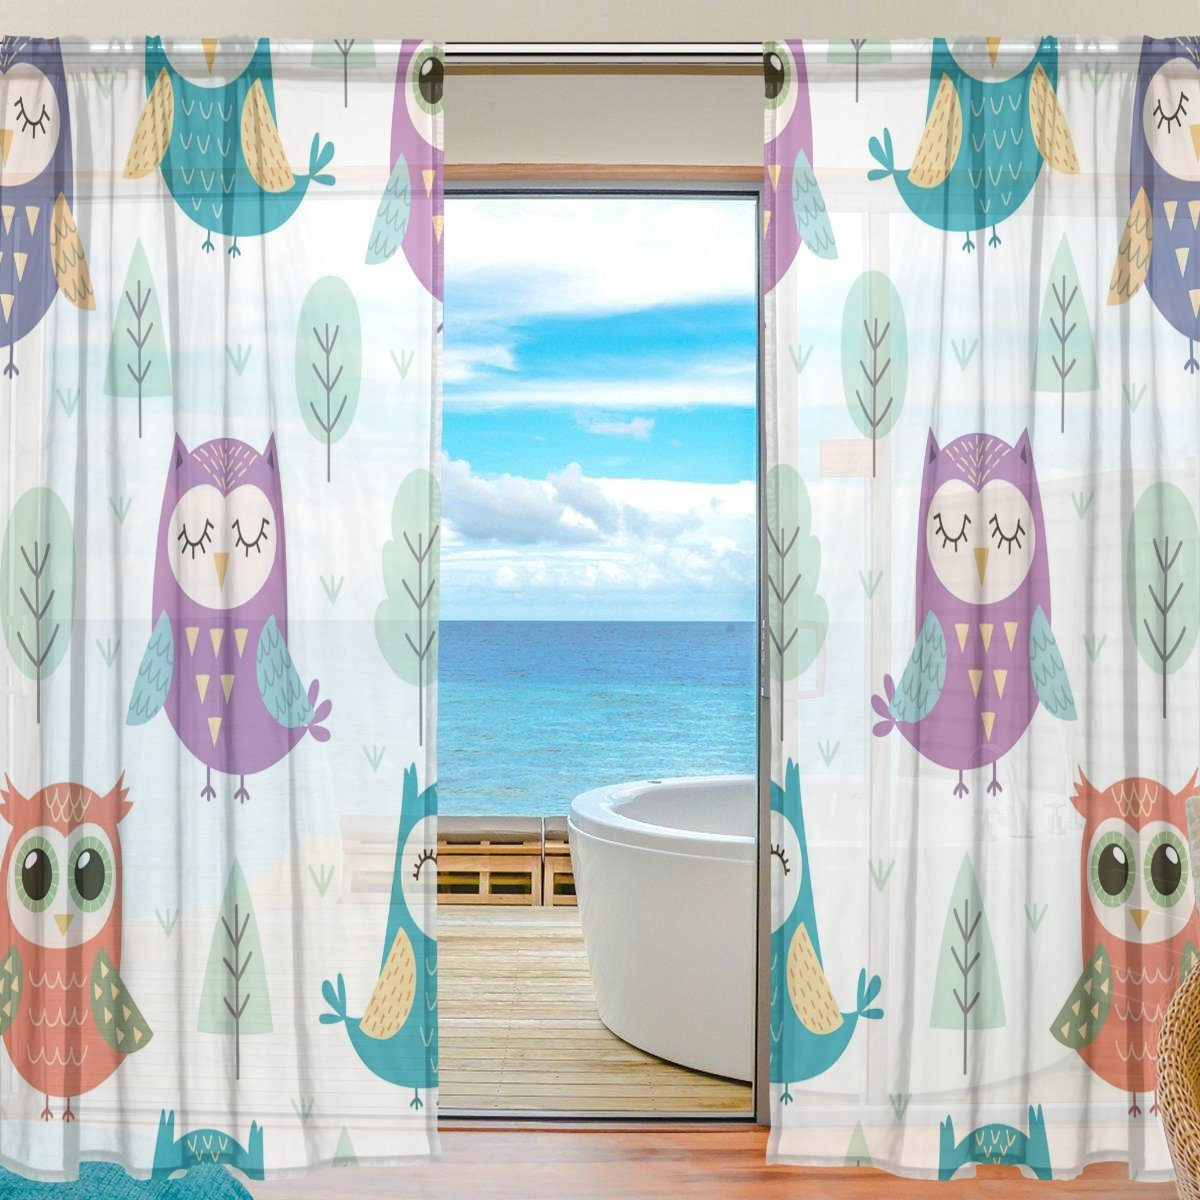 Cheap Purple And Green Curtains Find Purple And Green Curtains Deals On Line At Alibaba Com